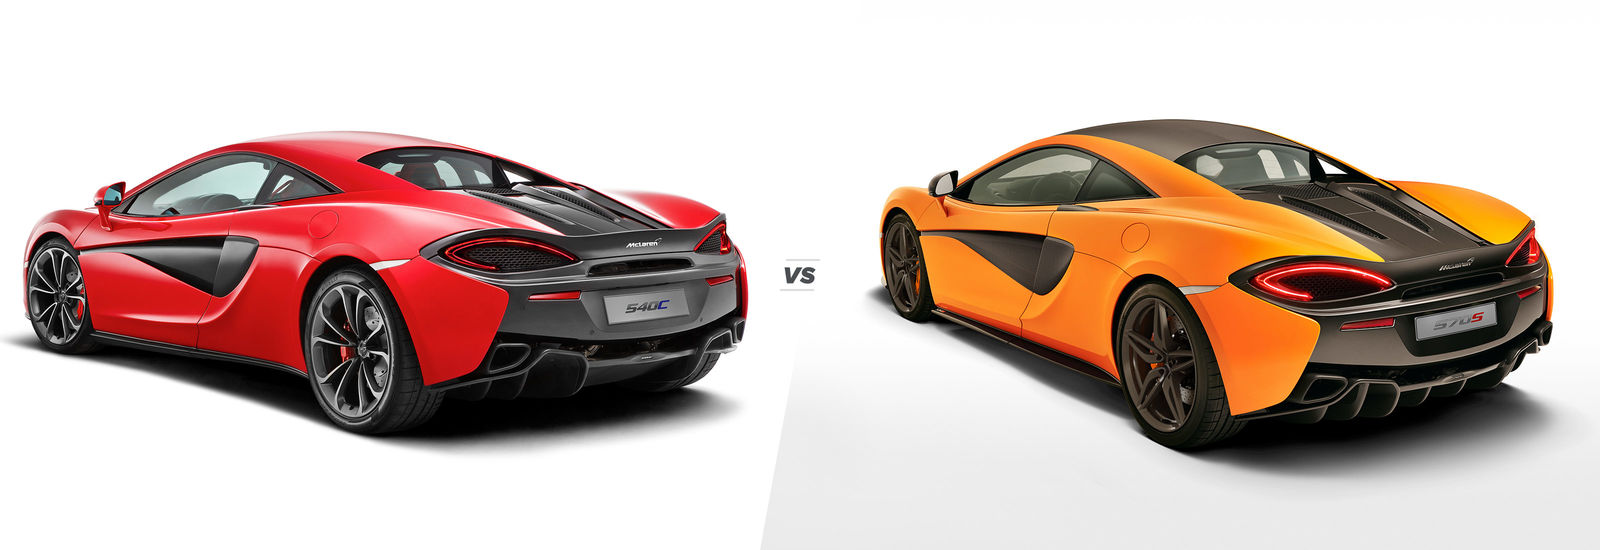 McLaren 540C vs 570S: what's the difference? | carwow